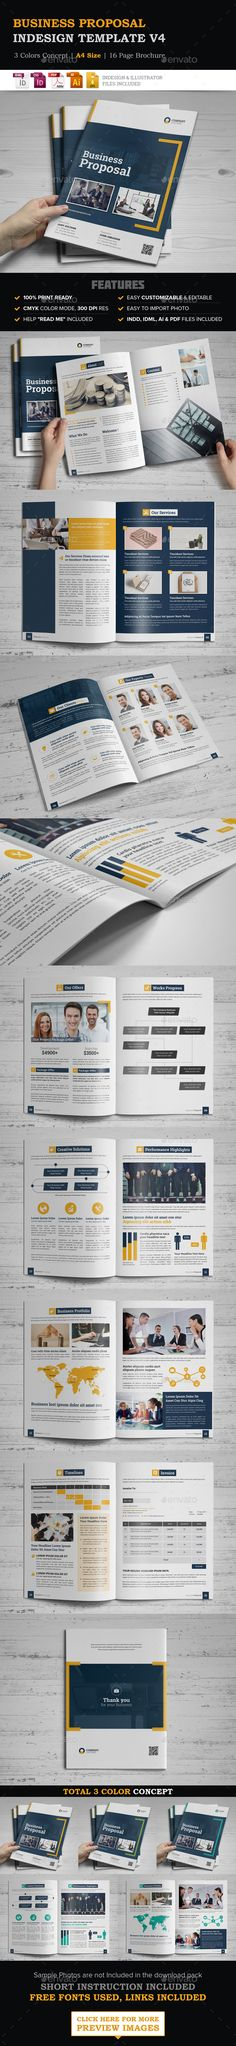 Proposal Proposal templates, Proposals and Project proposal - project proposal word template